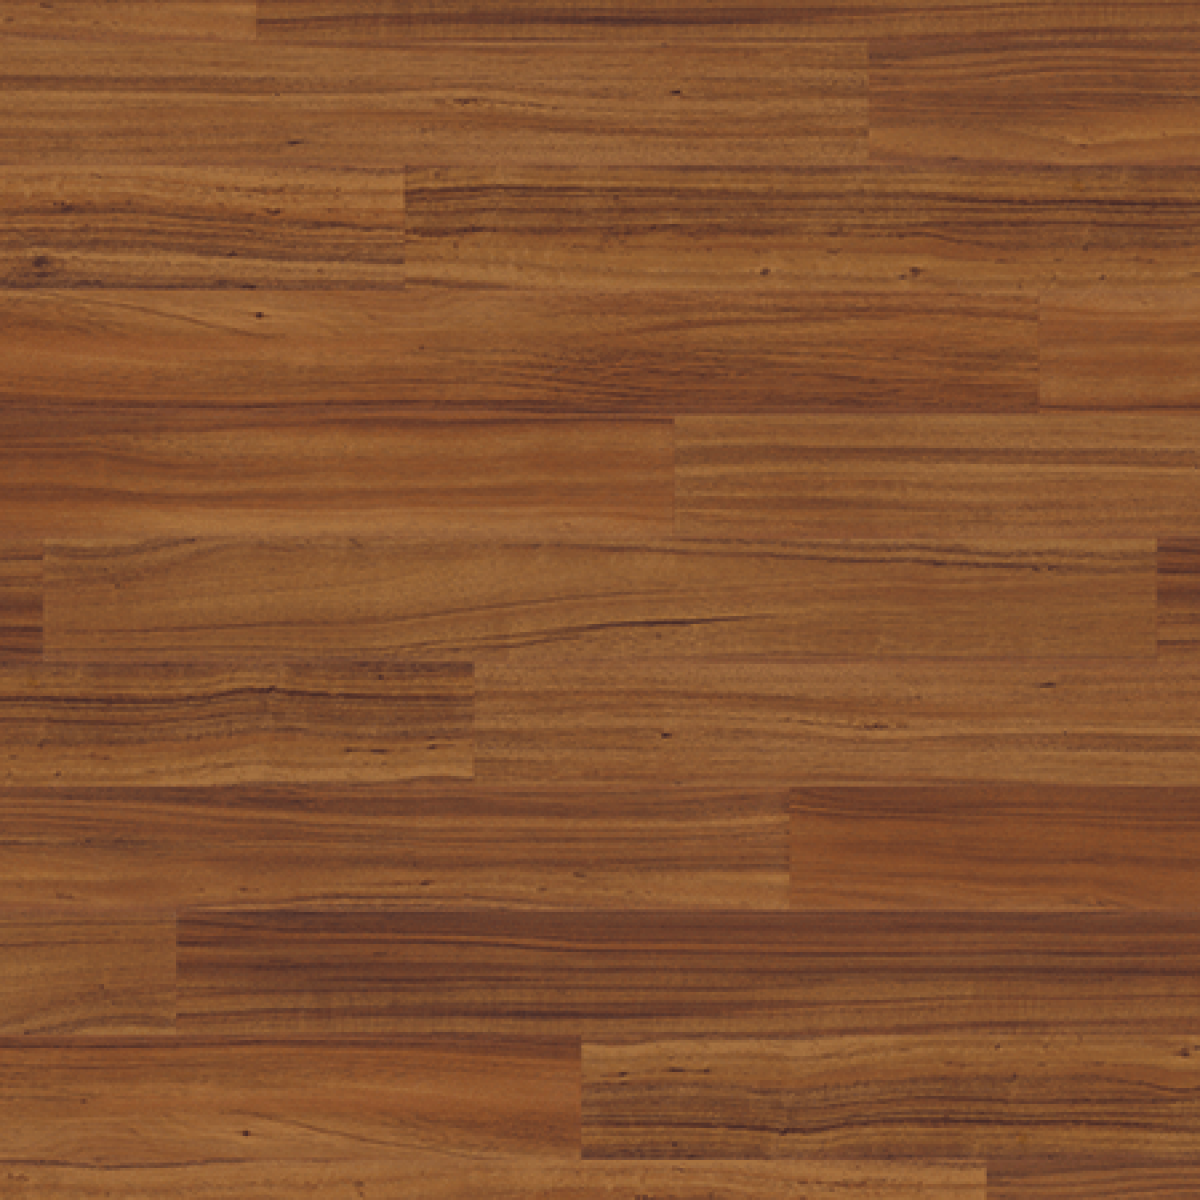 Karndean knight tile kp93 native koa vinyl flooring for Linoleum wood flooring